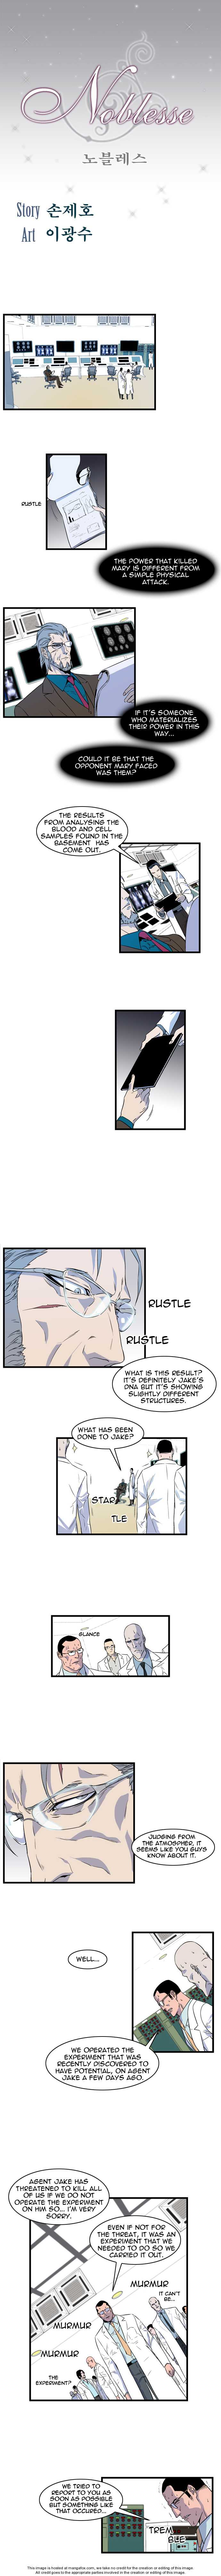 Noblesse 80 Page 1